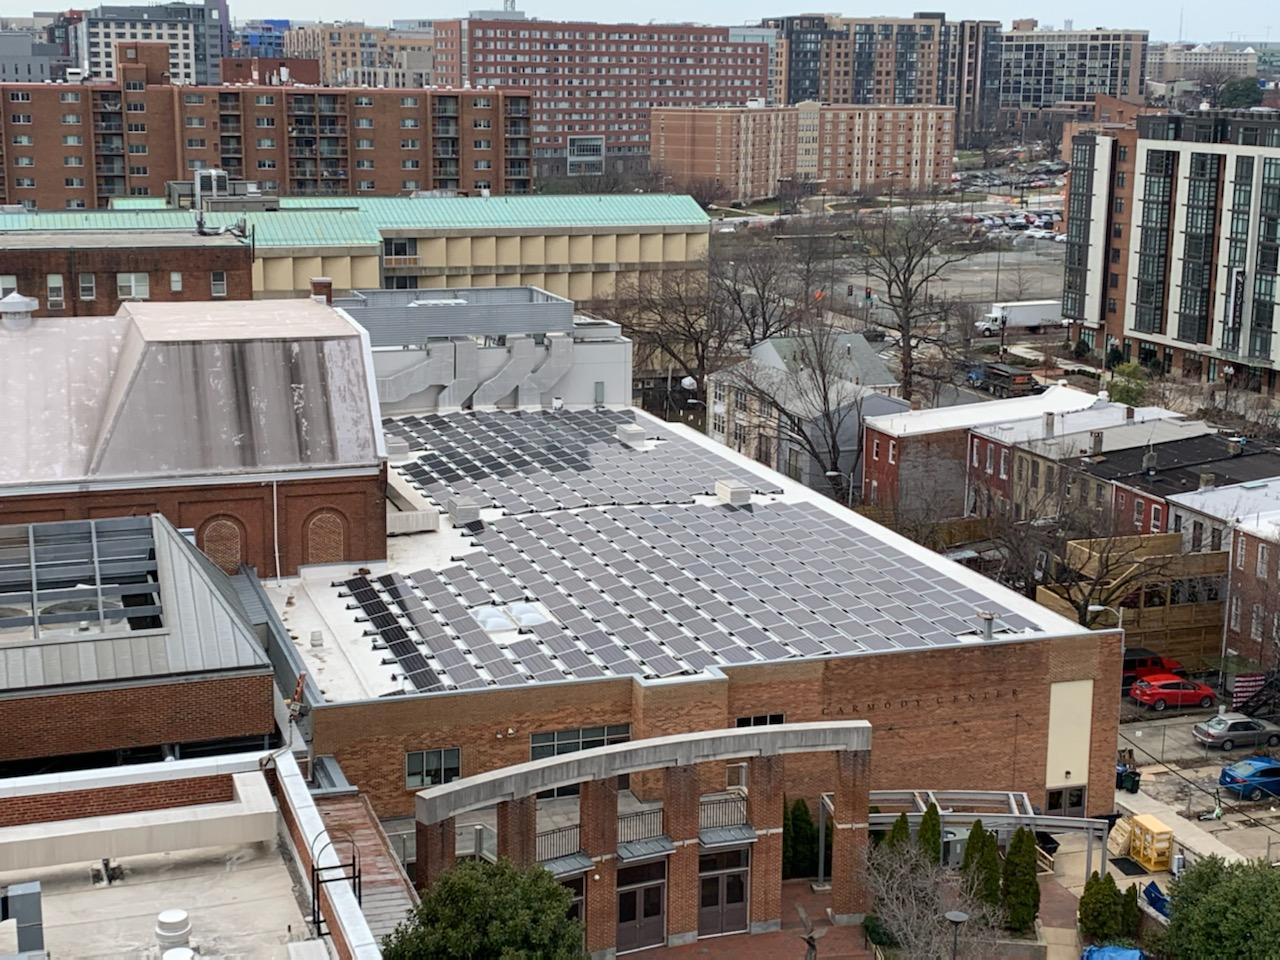 Solar panels on roof of Gonzaga College High School gym. Photo with permission of Gonzaga High School, March 2020